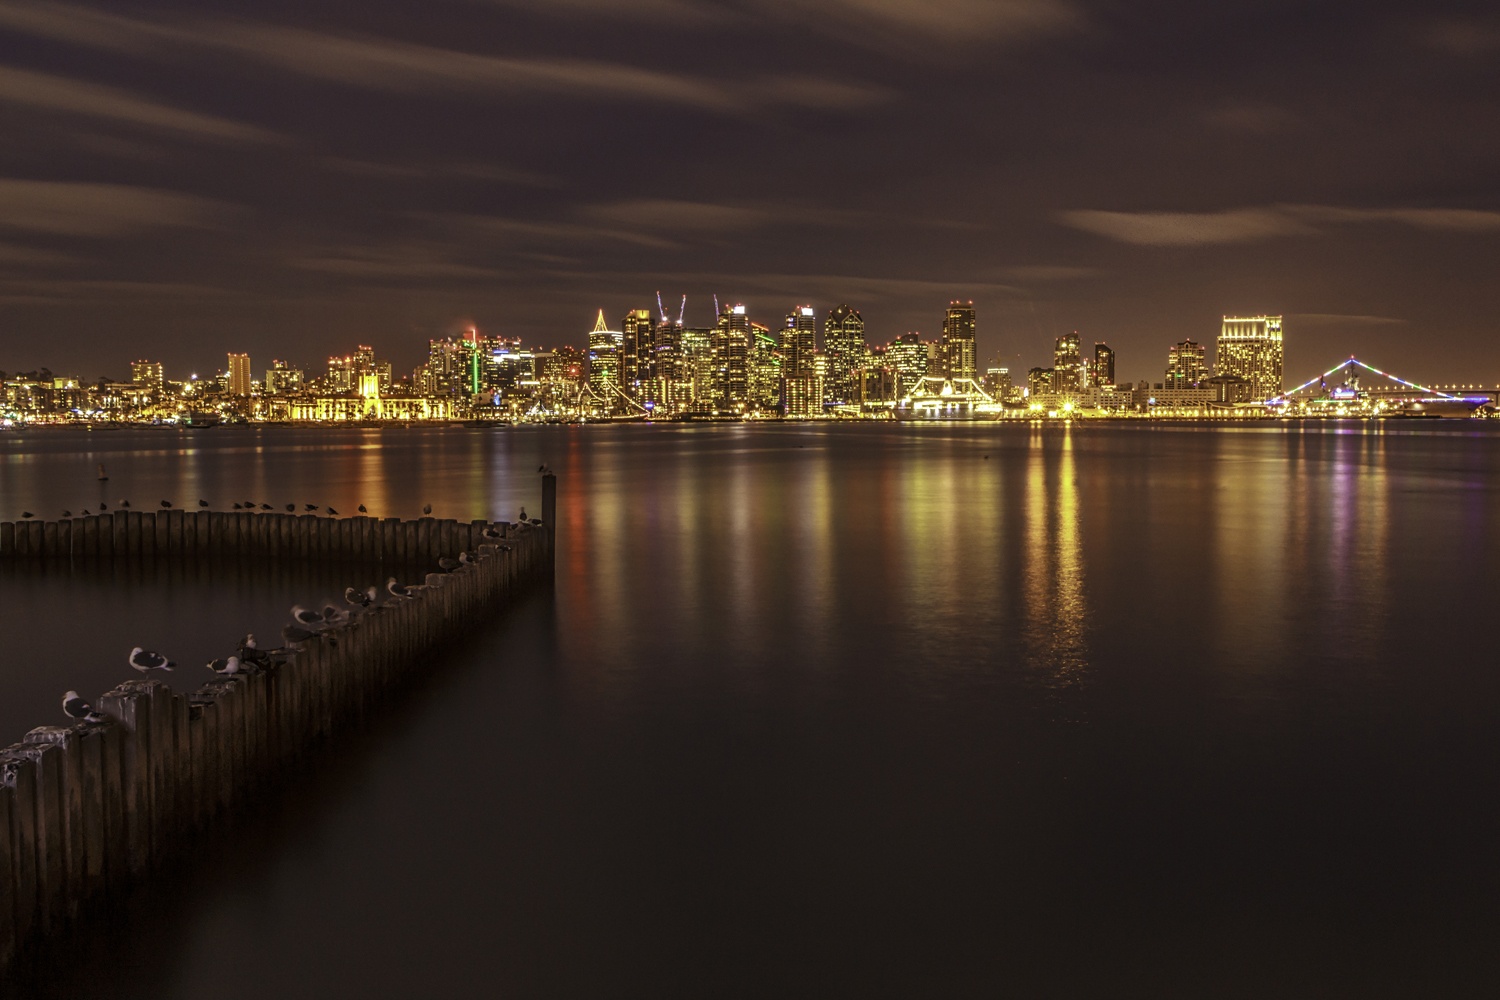 Night photo, San Diego skyline